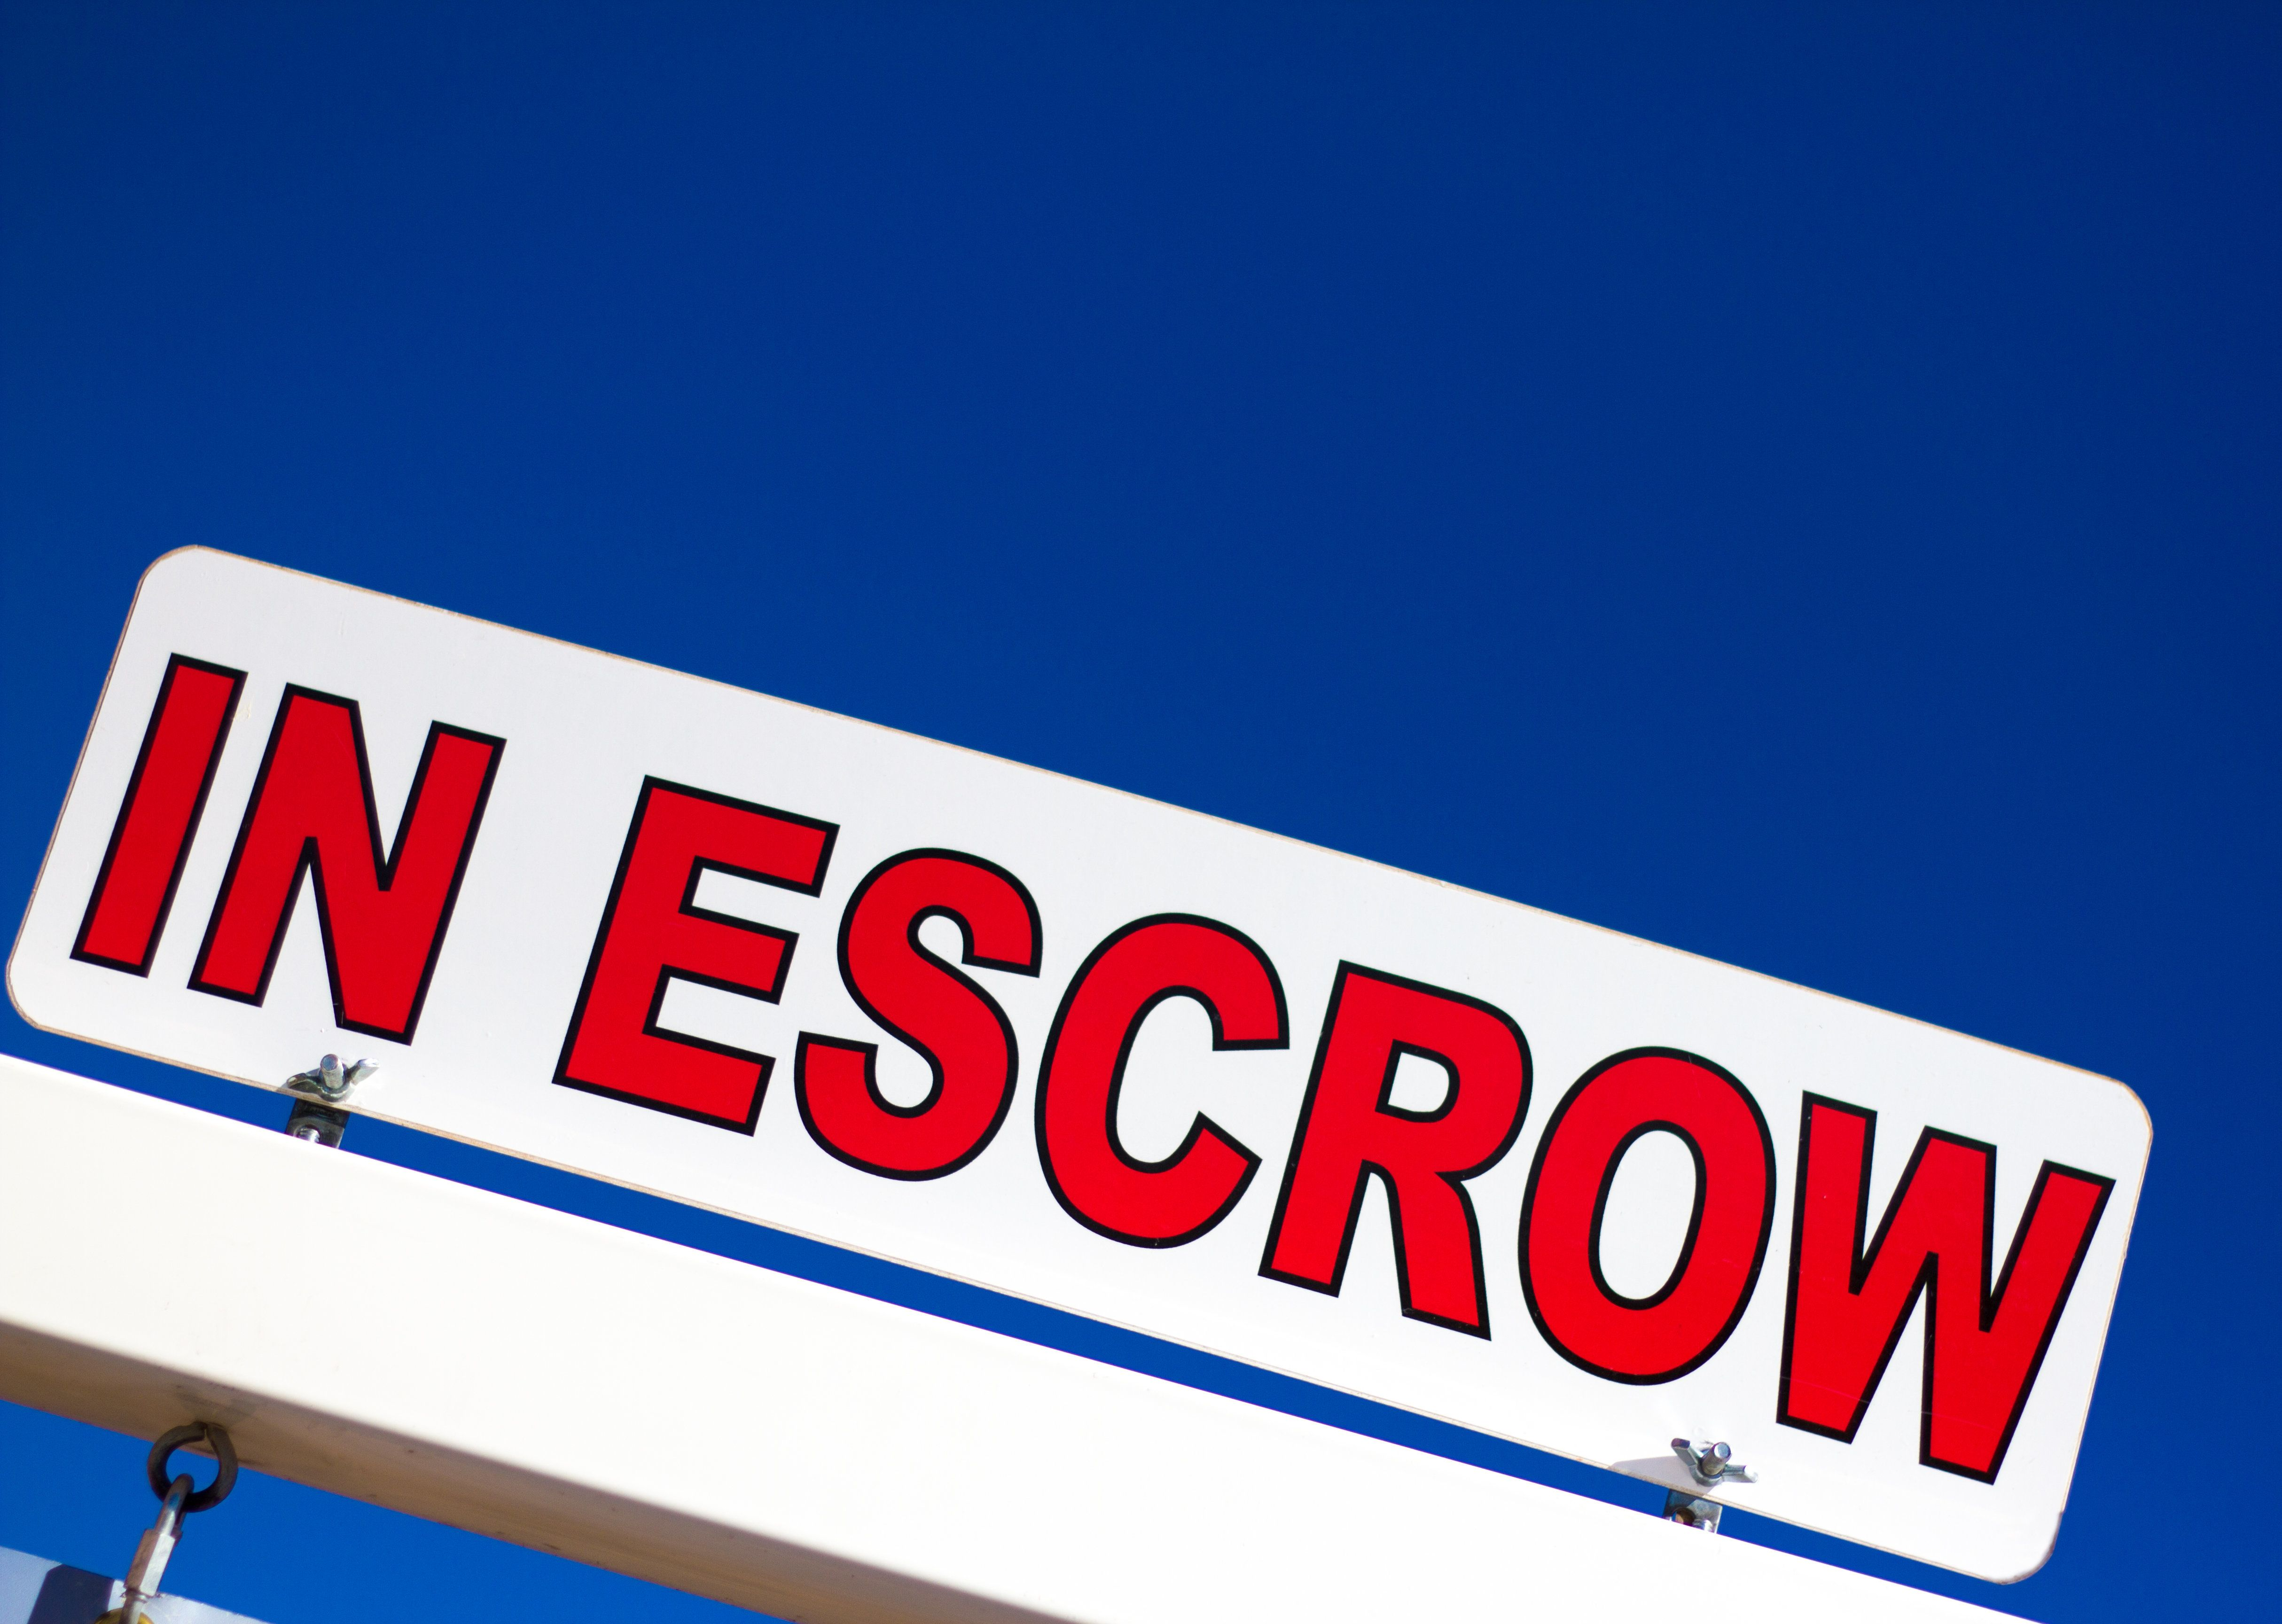 Vibrant red and white 'In Escrow' sign against a brilliant blue sky. Copy space available in the sky.